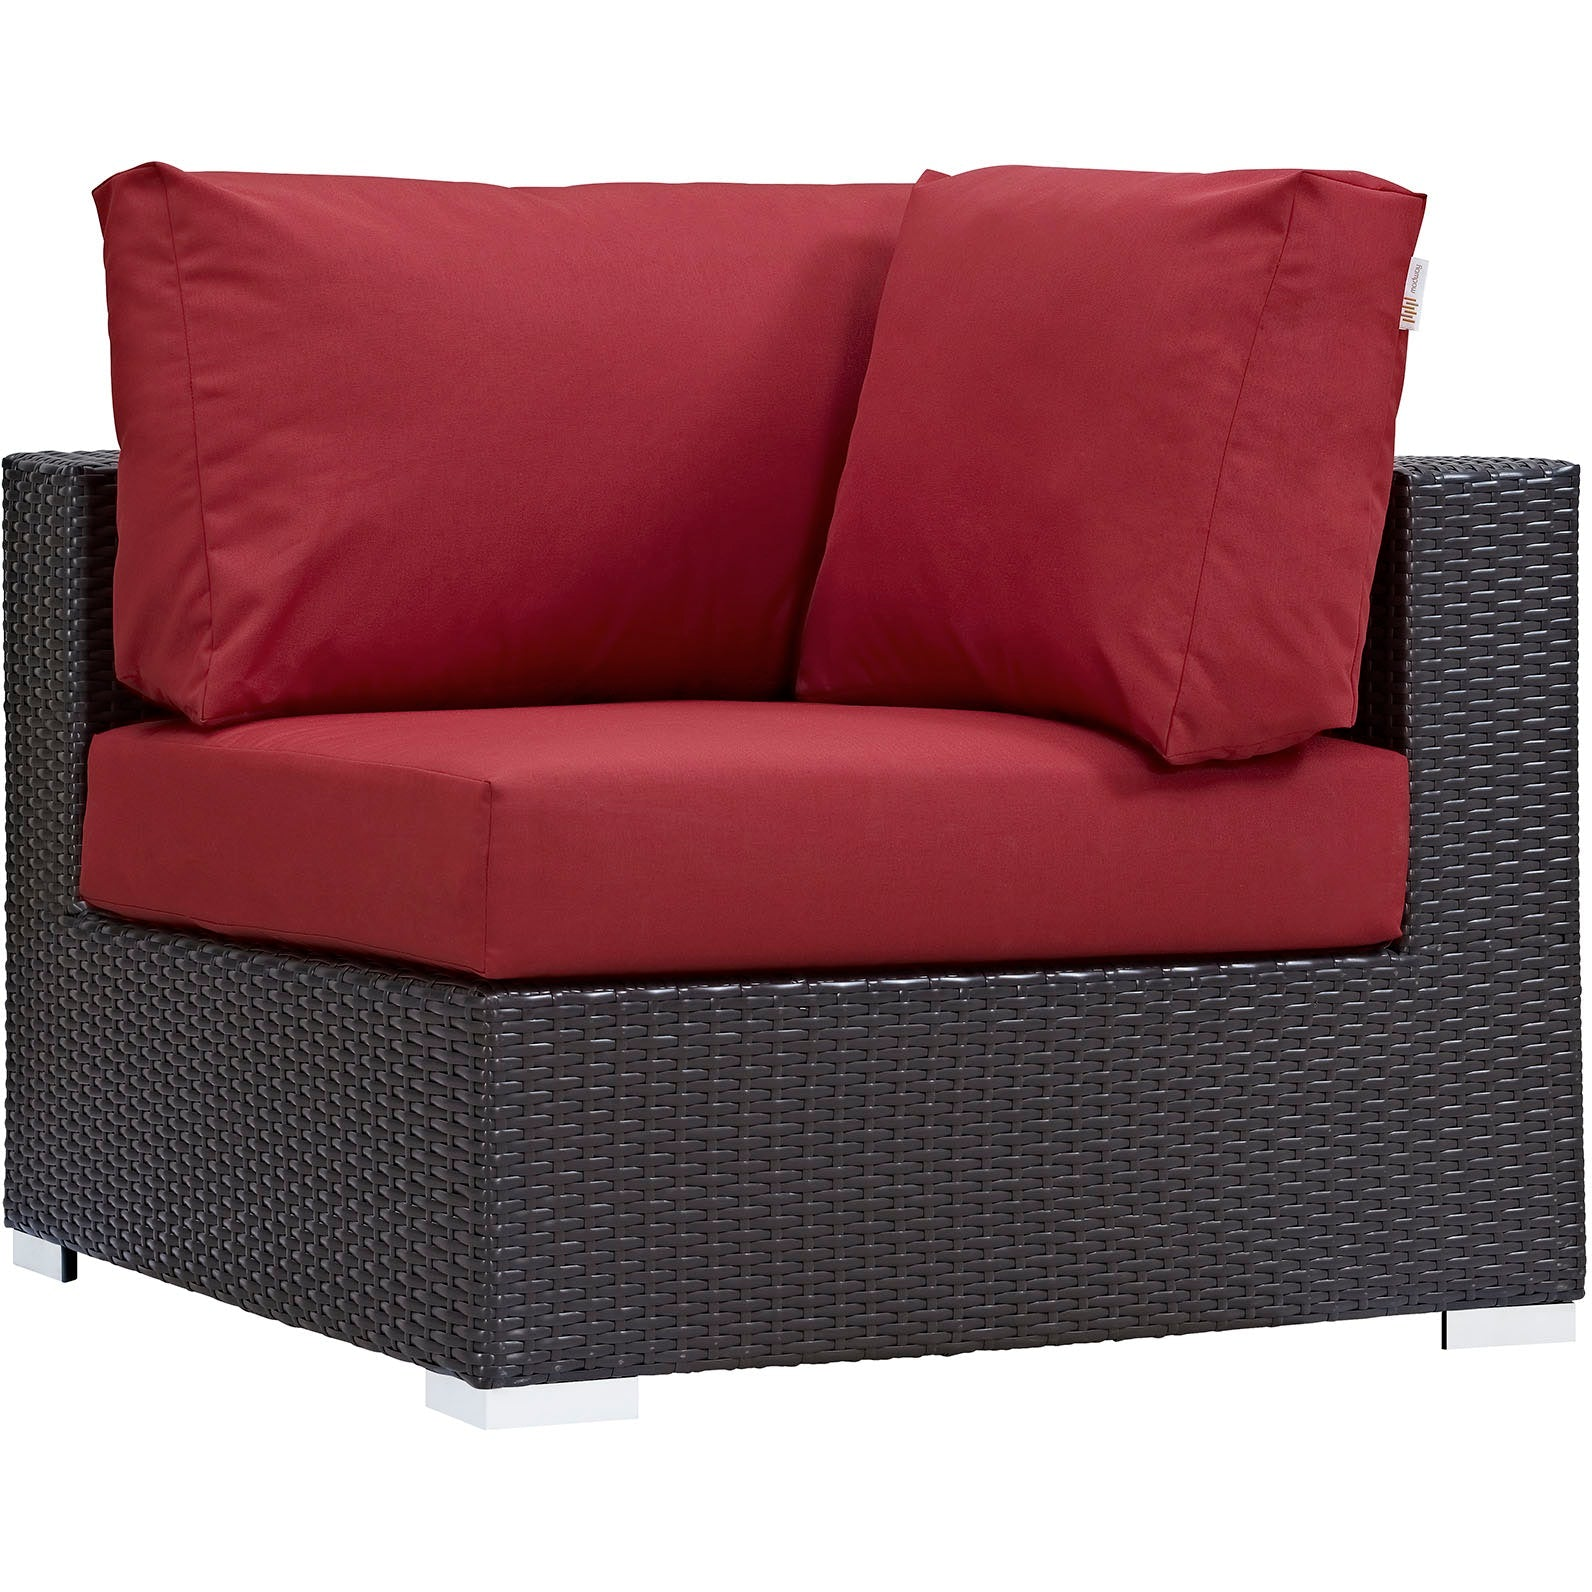 Convene 10 Piece Outdoor Patio Sectional Set - Espresso Red